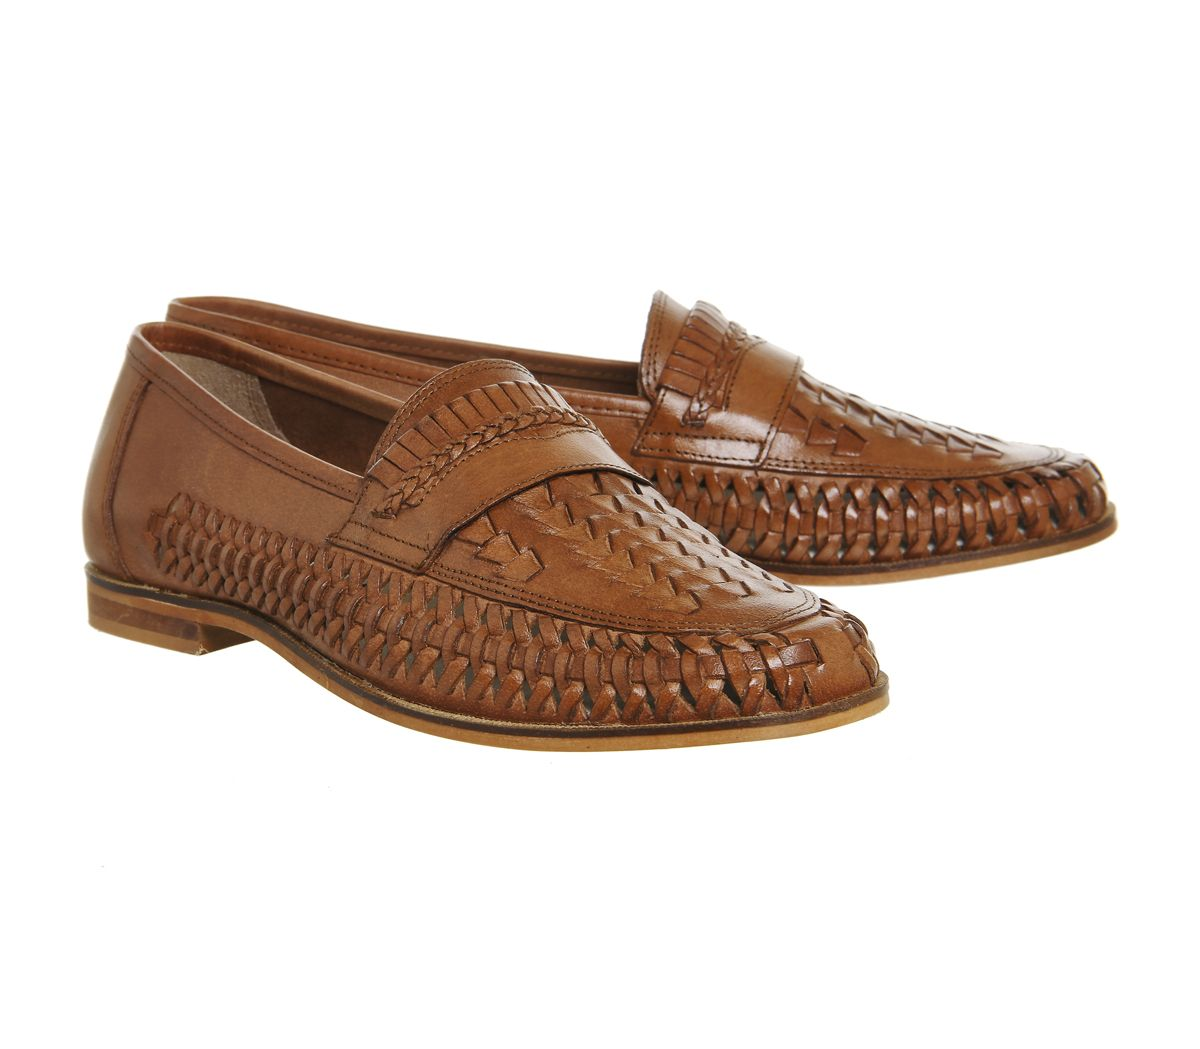 92a42510eed9 Uomo Office Fiocco Weave Slip-On, Loafers Marrone Lucido Scarpe ...